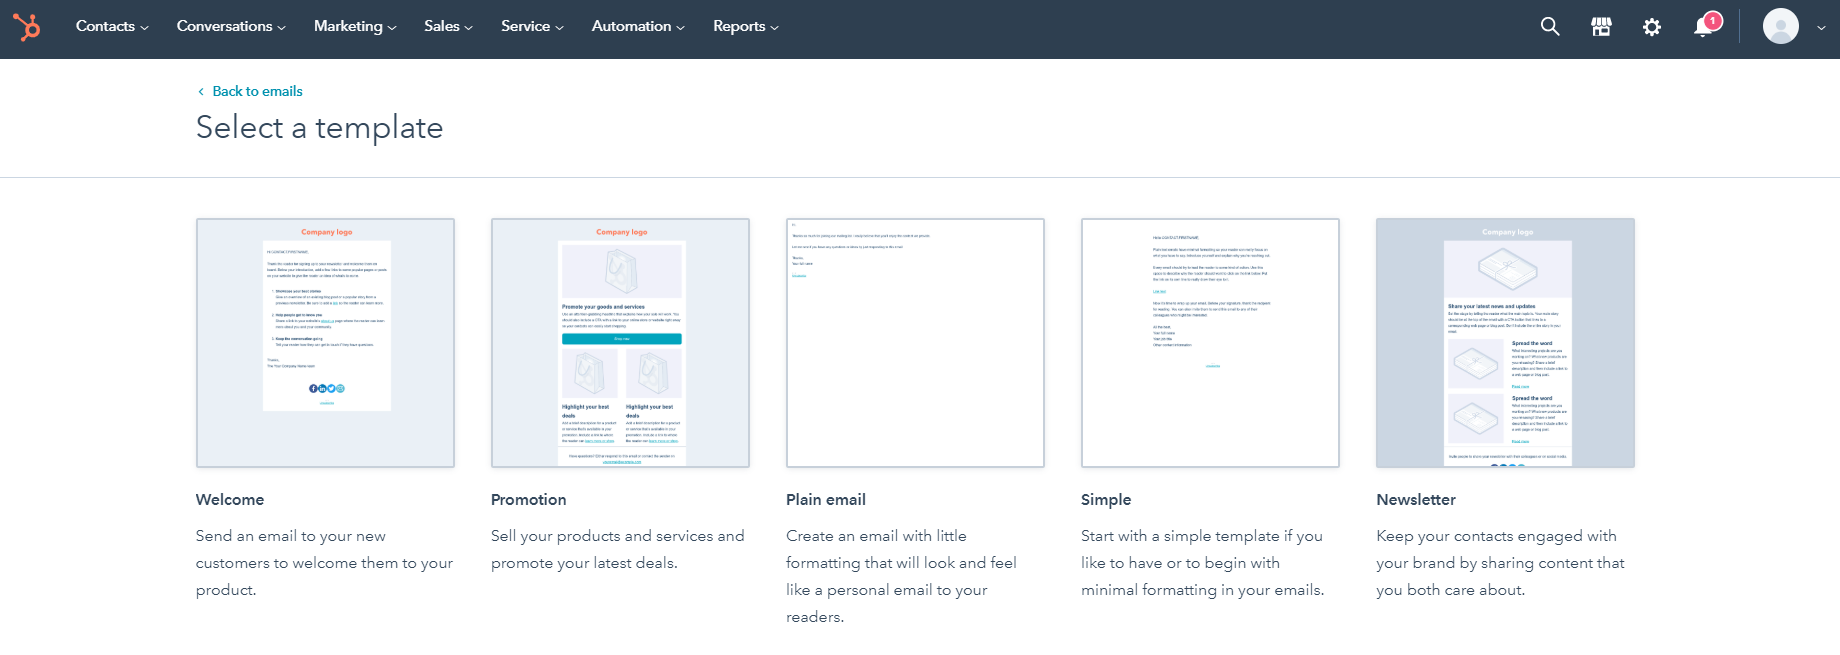 HubSpot email templates menu interface